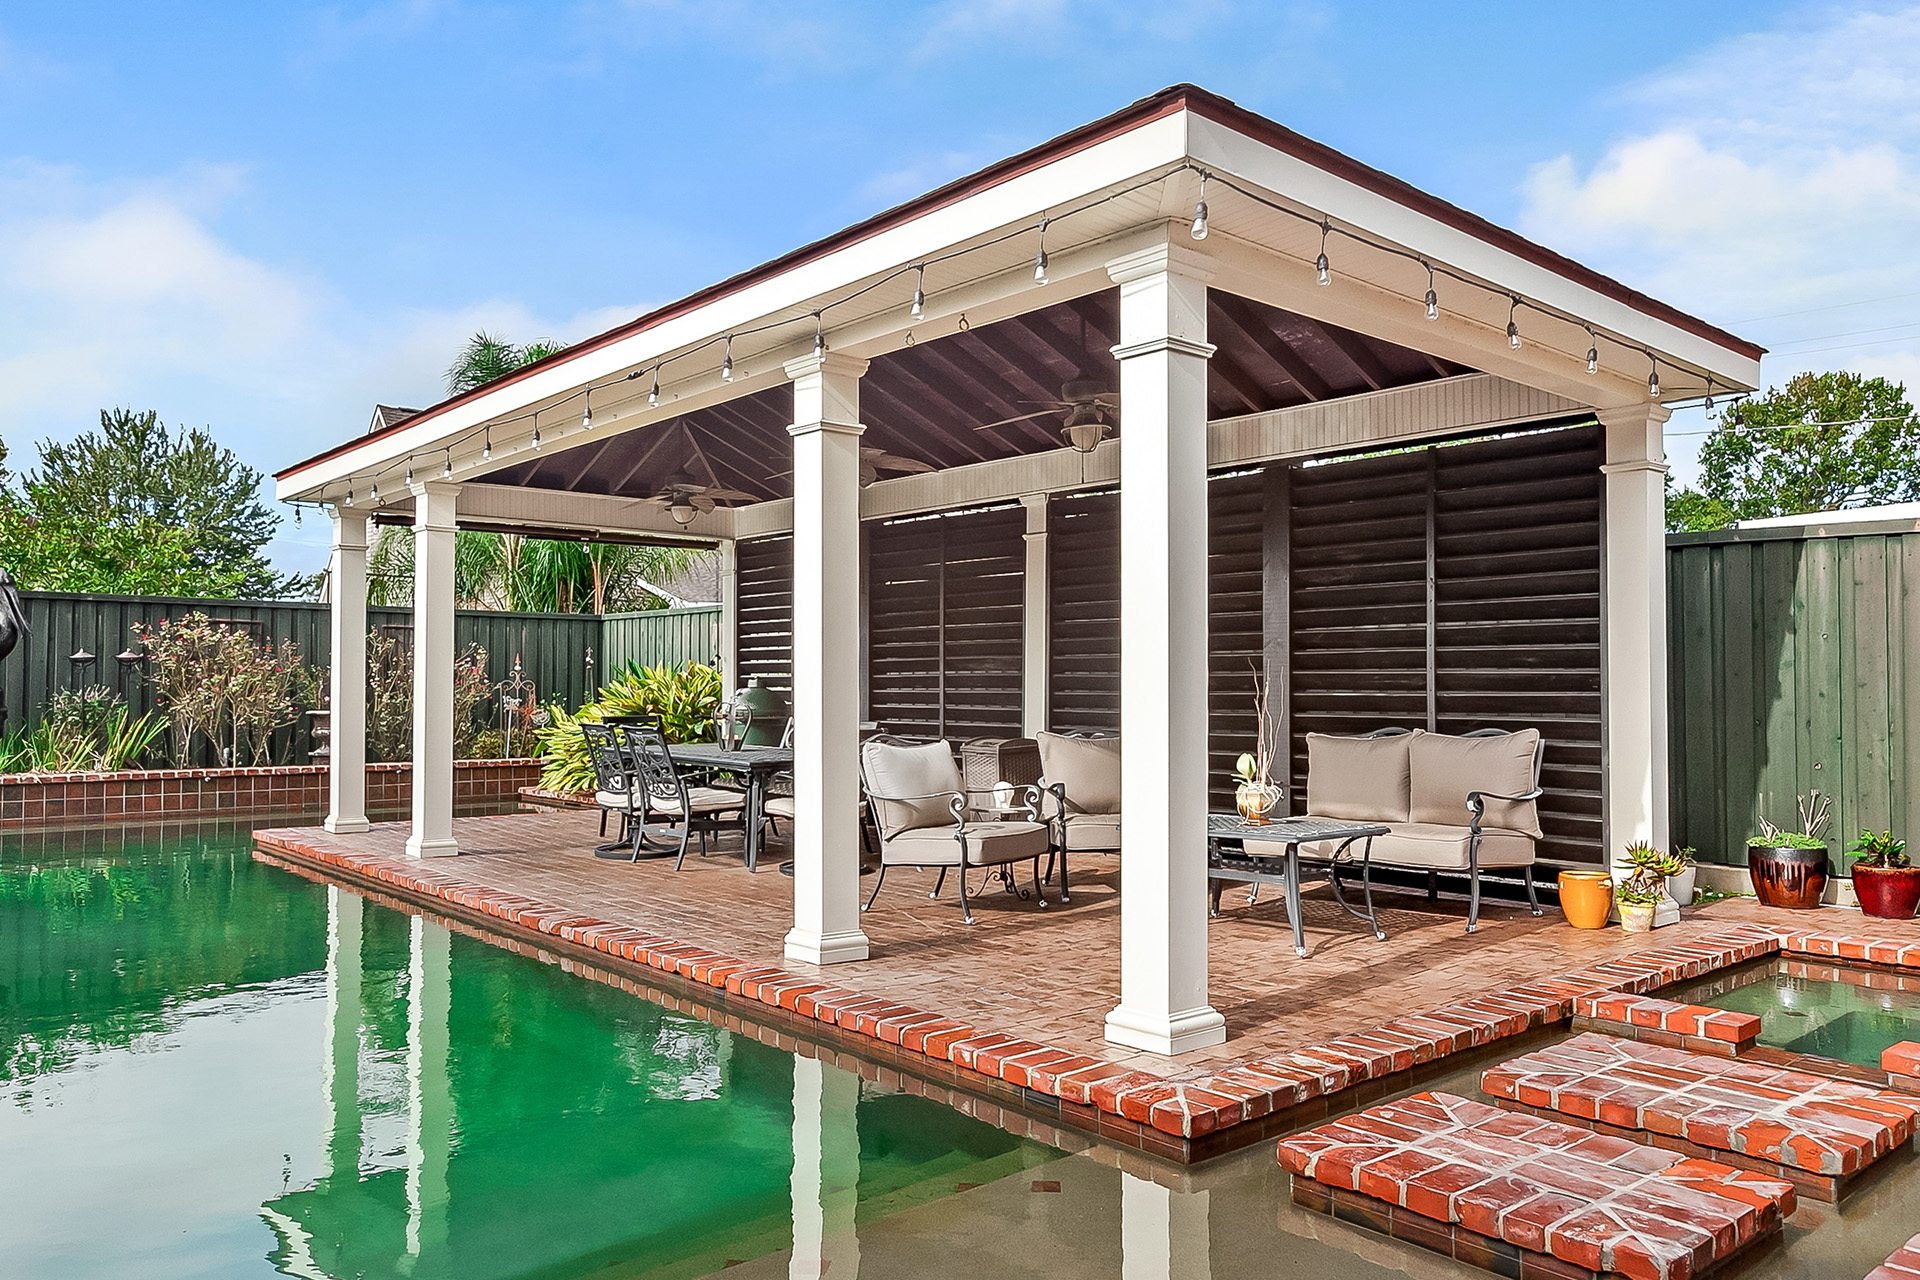 Pavilions | New Orleans Garden Pavilions | Custom Outdoor ... on Outdoor Patio Pavilion id=33171